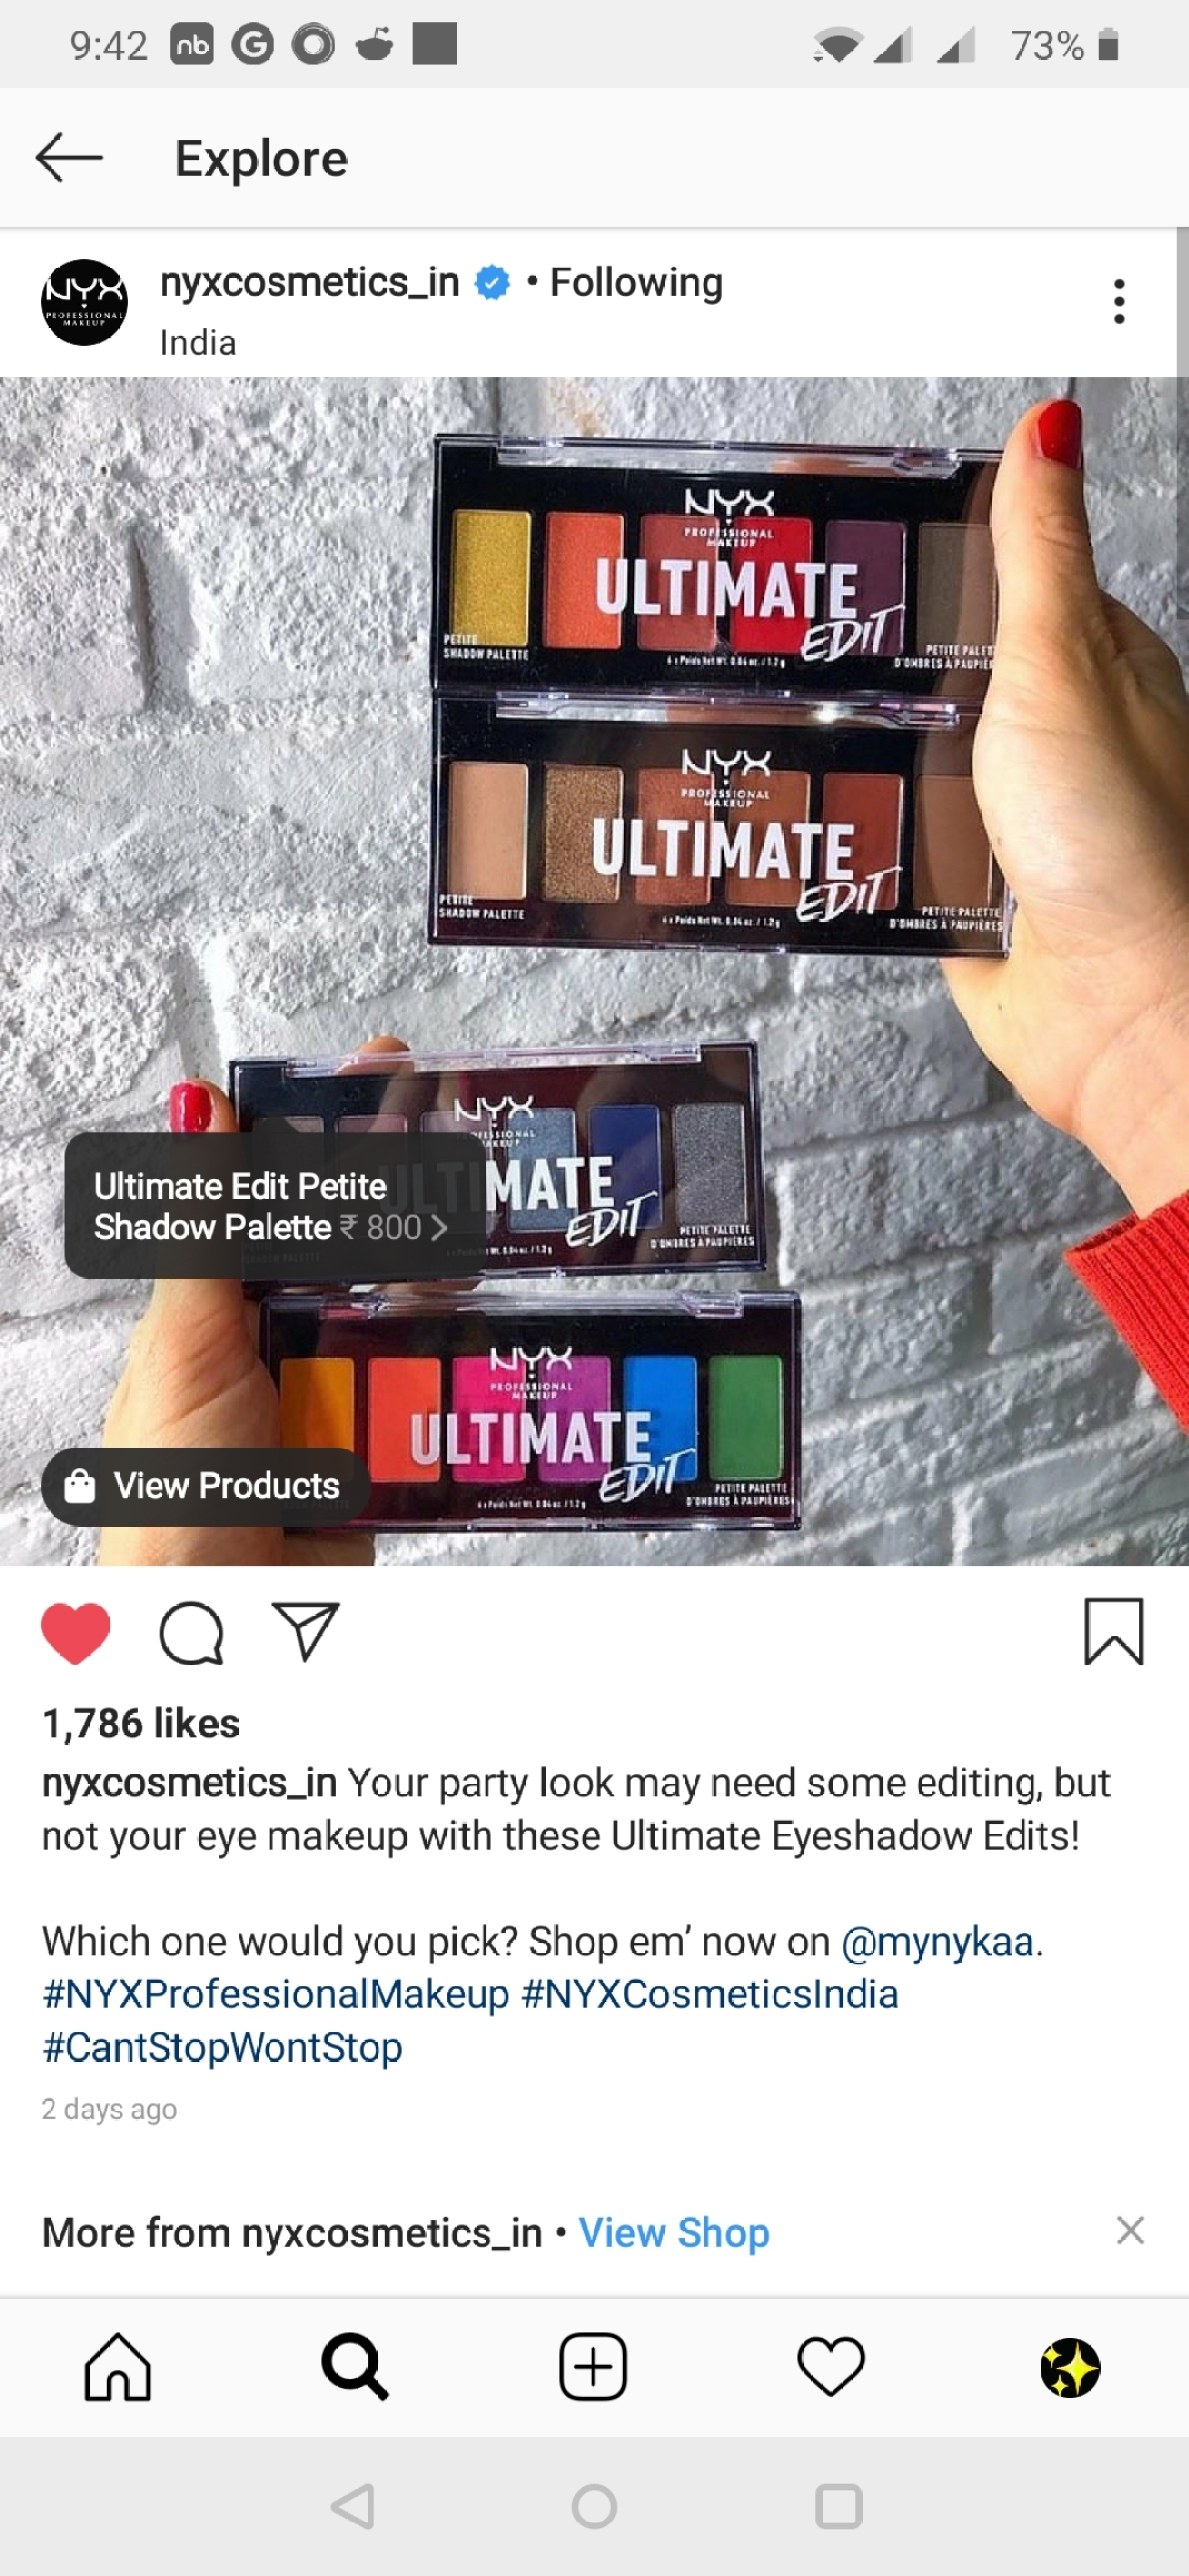 The product is tagged in this post